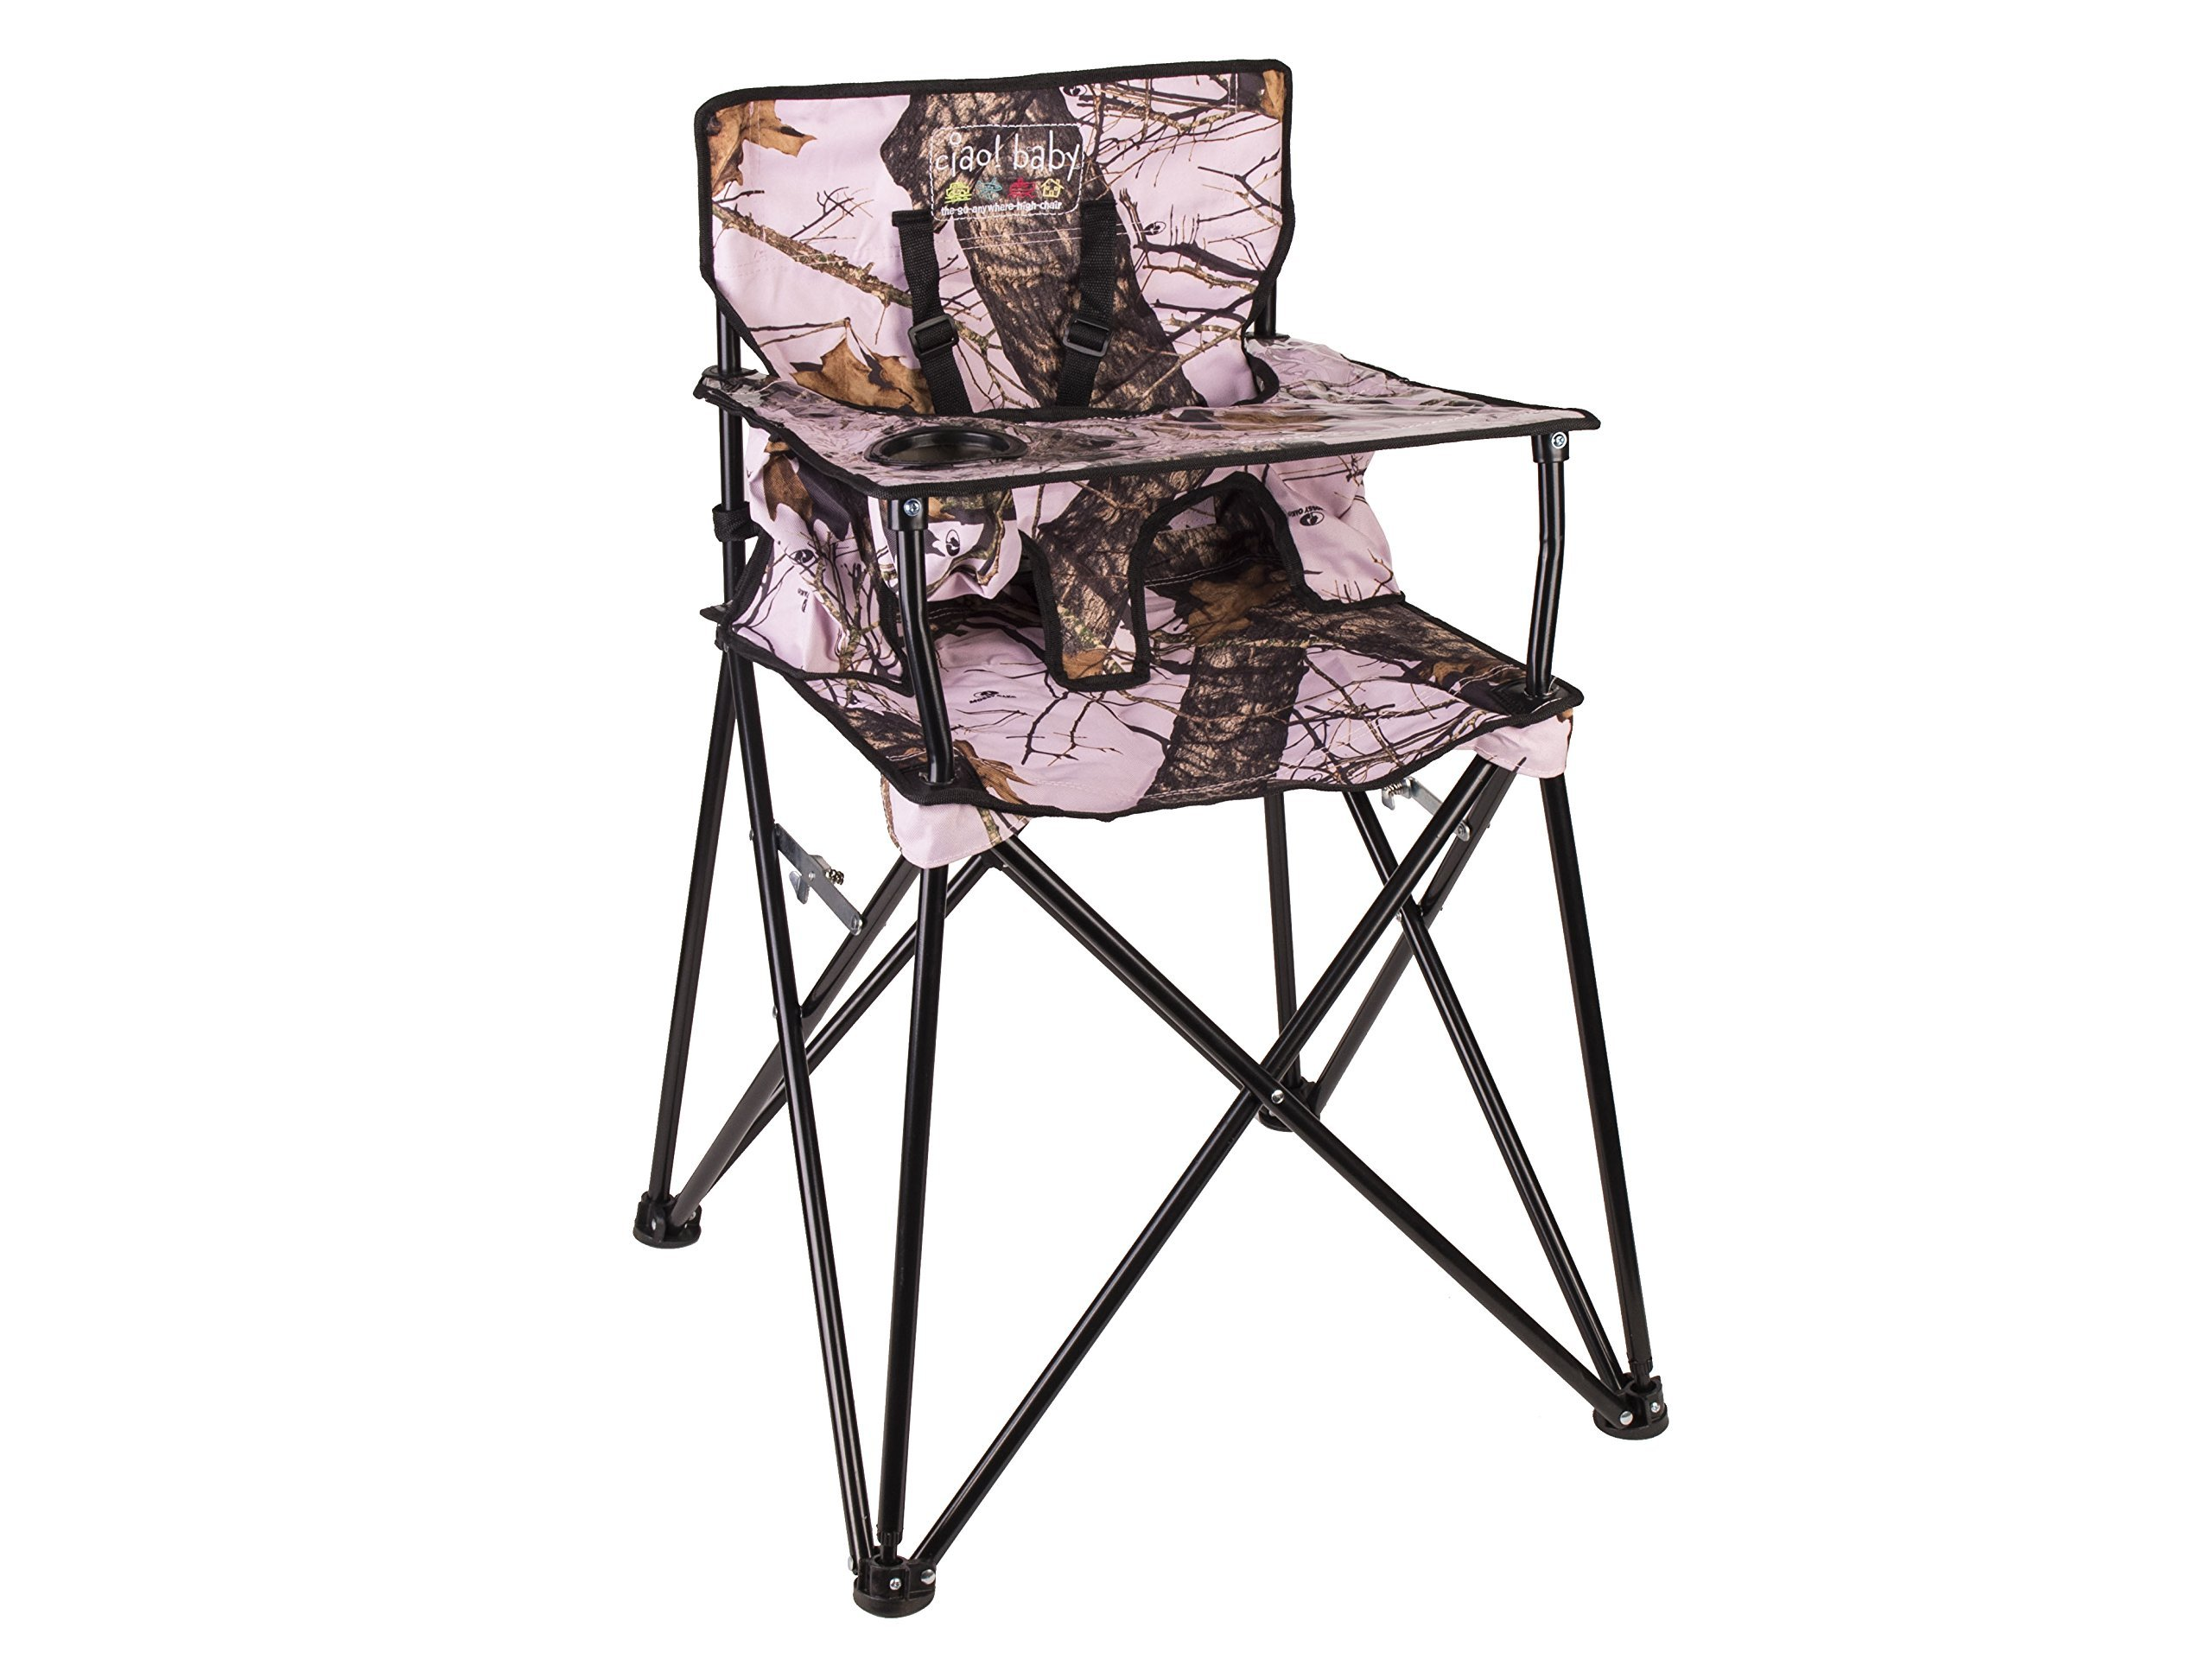 Amazon ciao baby Portable Highchair Mossy Oak Infinity